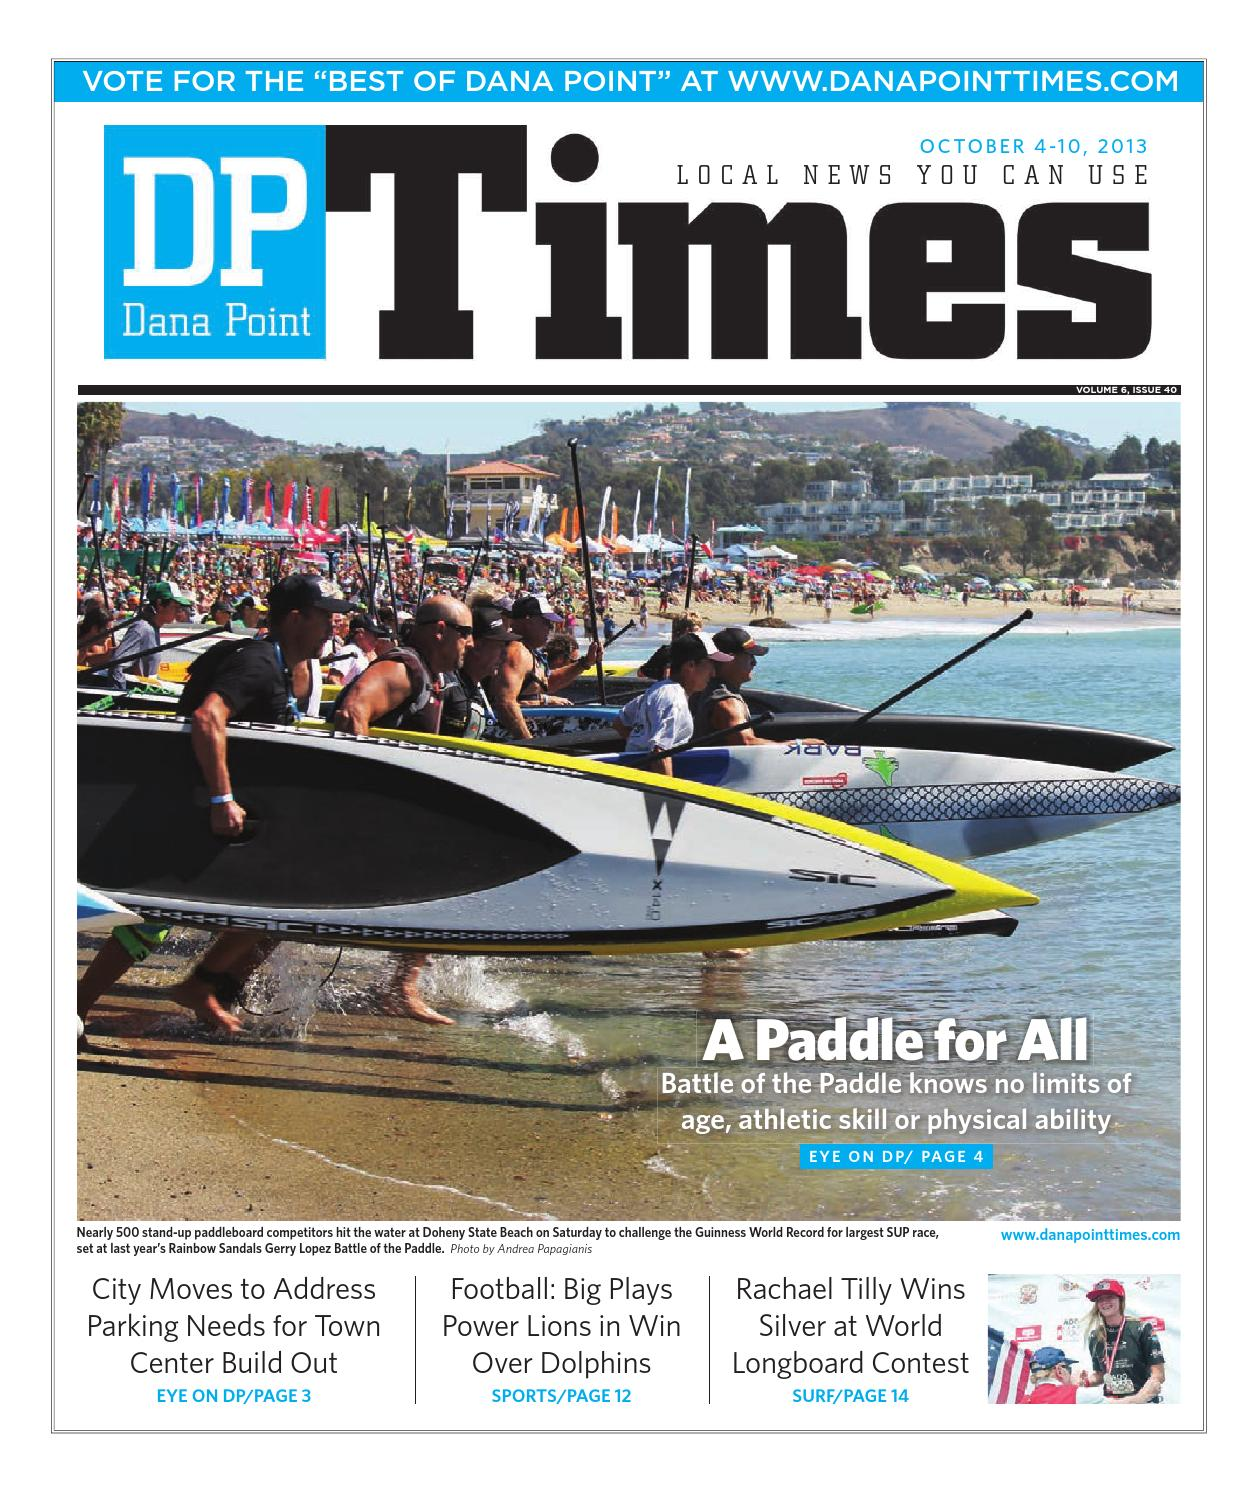 Actriz Porno Guiness World Record october 4, 2013dana point times - issuu